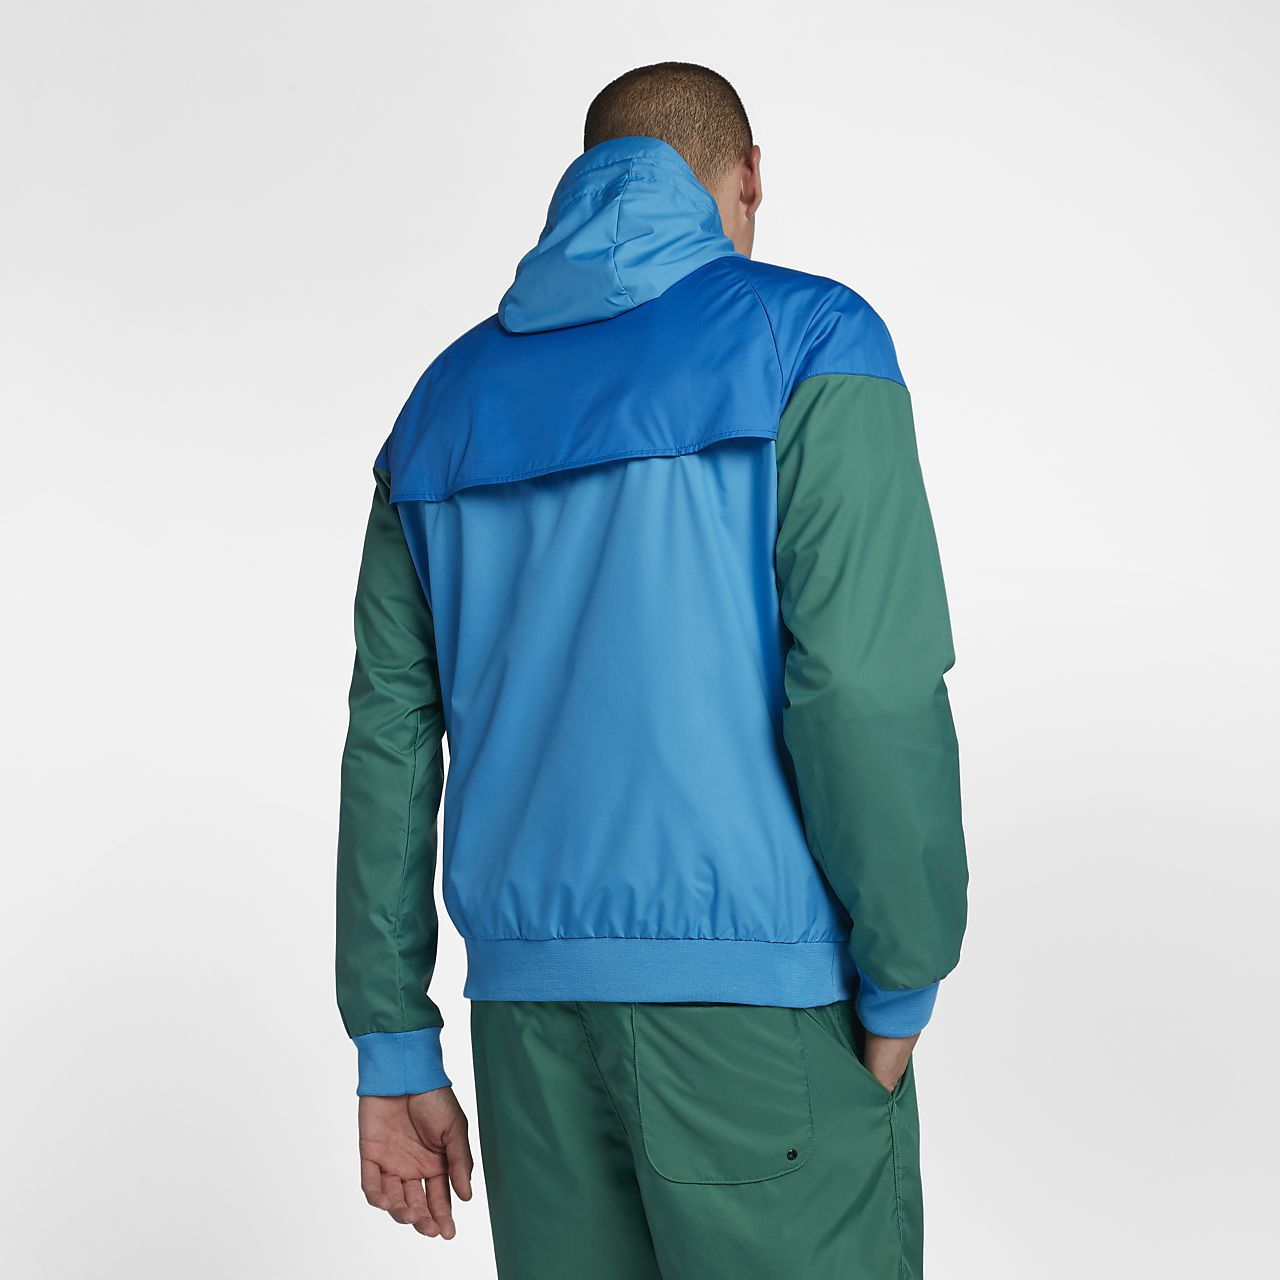 Low Resolution Nike Sportswear Windrunner Men's Jacket Nike Sportswear  Windrunner Men's Jacket